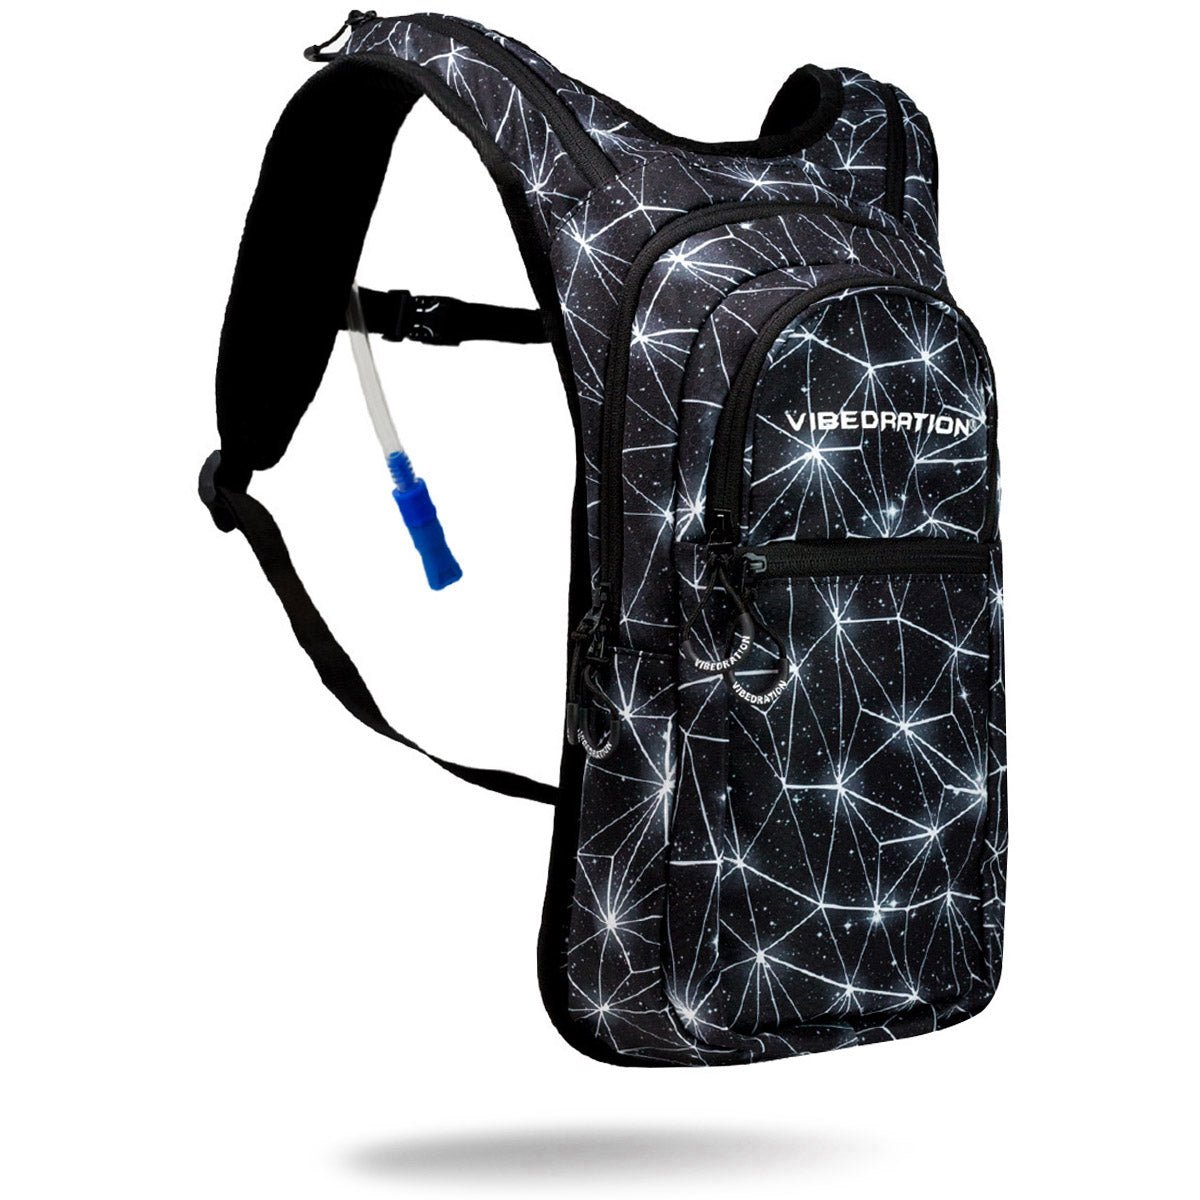 Black and white space hydration pack with two liter water reservoir